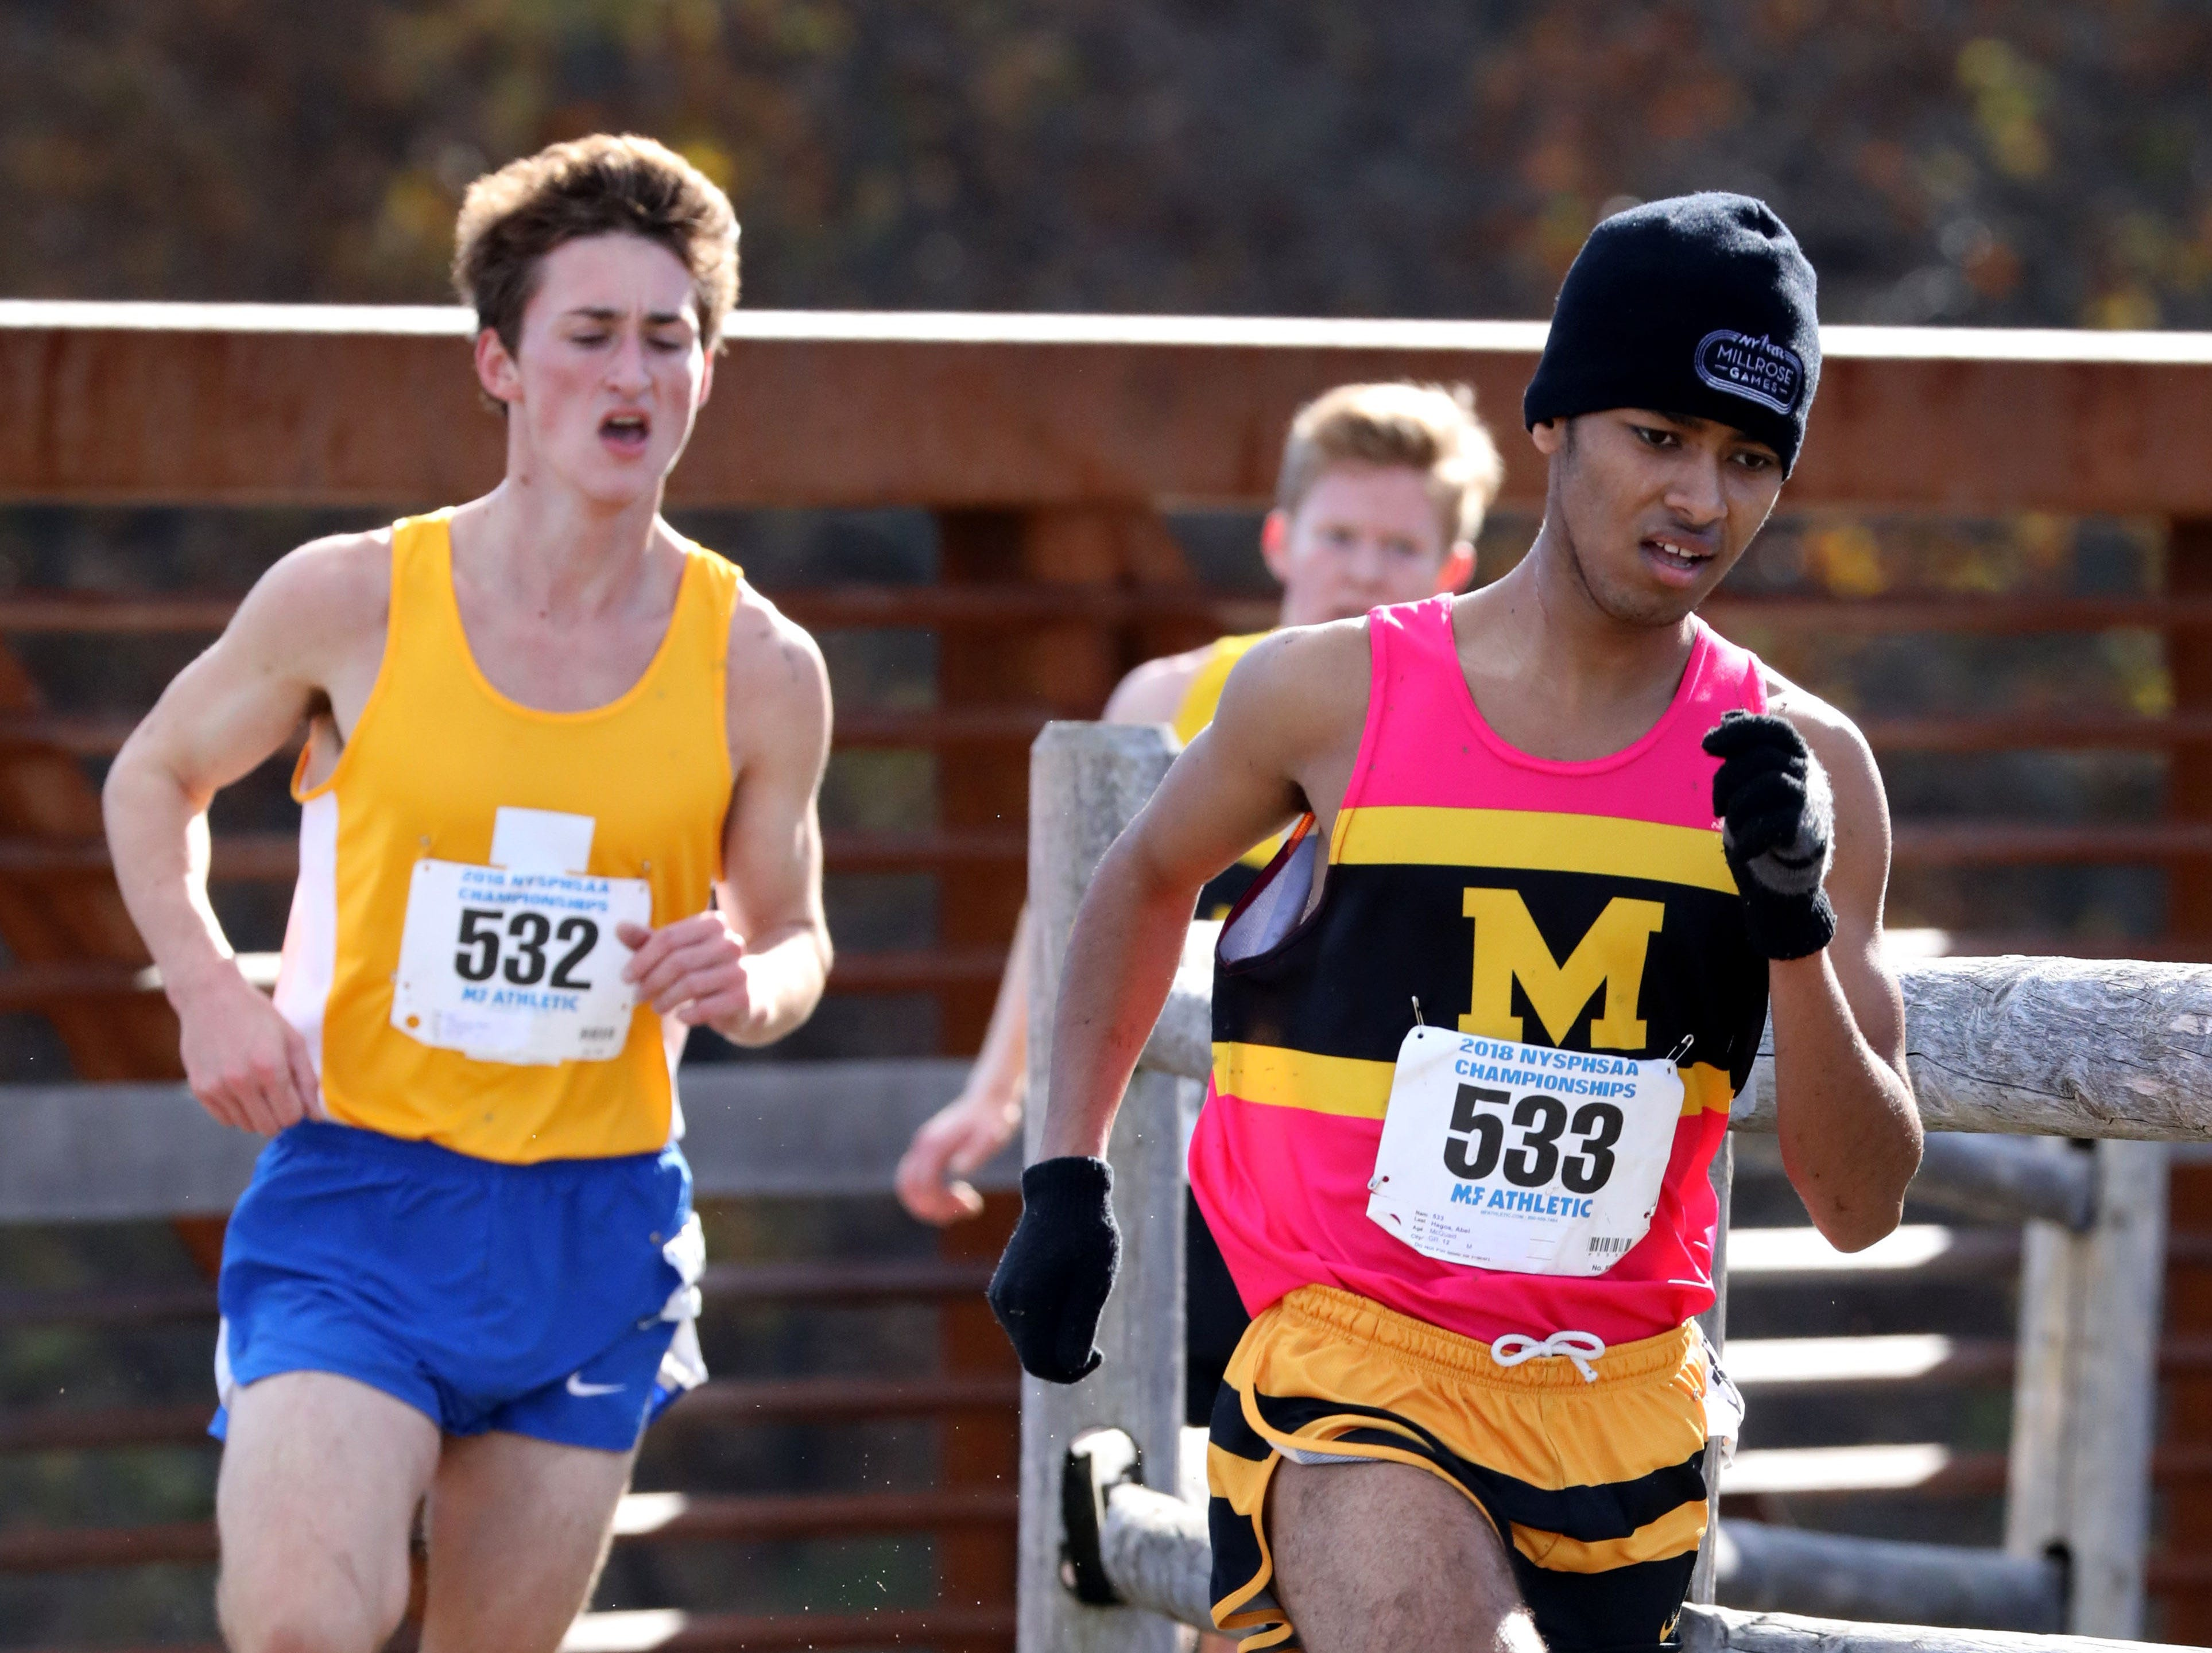 Abel Hagos from McQuaid, right, followed by Ryan Thompson from Irondequoit, runs the boys Class A race during the 2018 NYSPHSAA Cross Country Championships at Sunken Meadow State Park in Kings Park on Nov. 10, 2018.